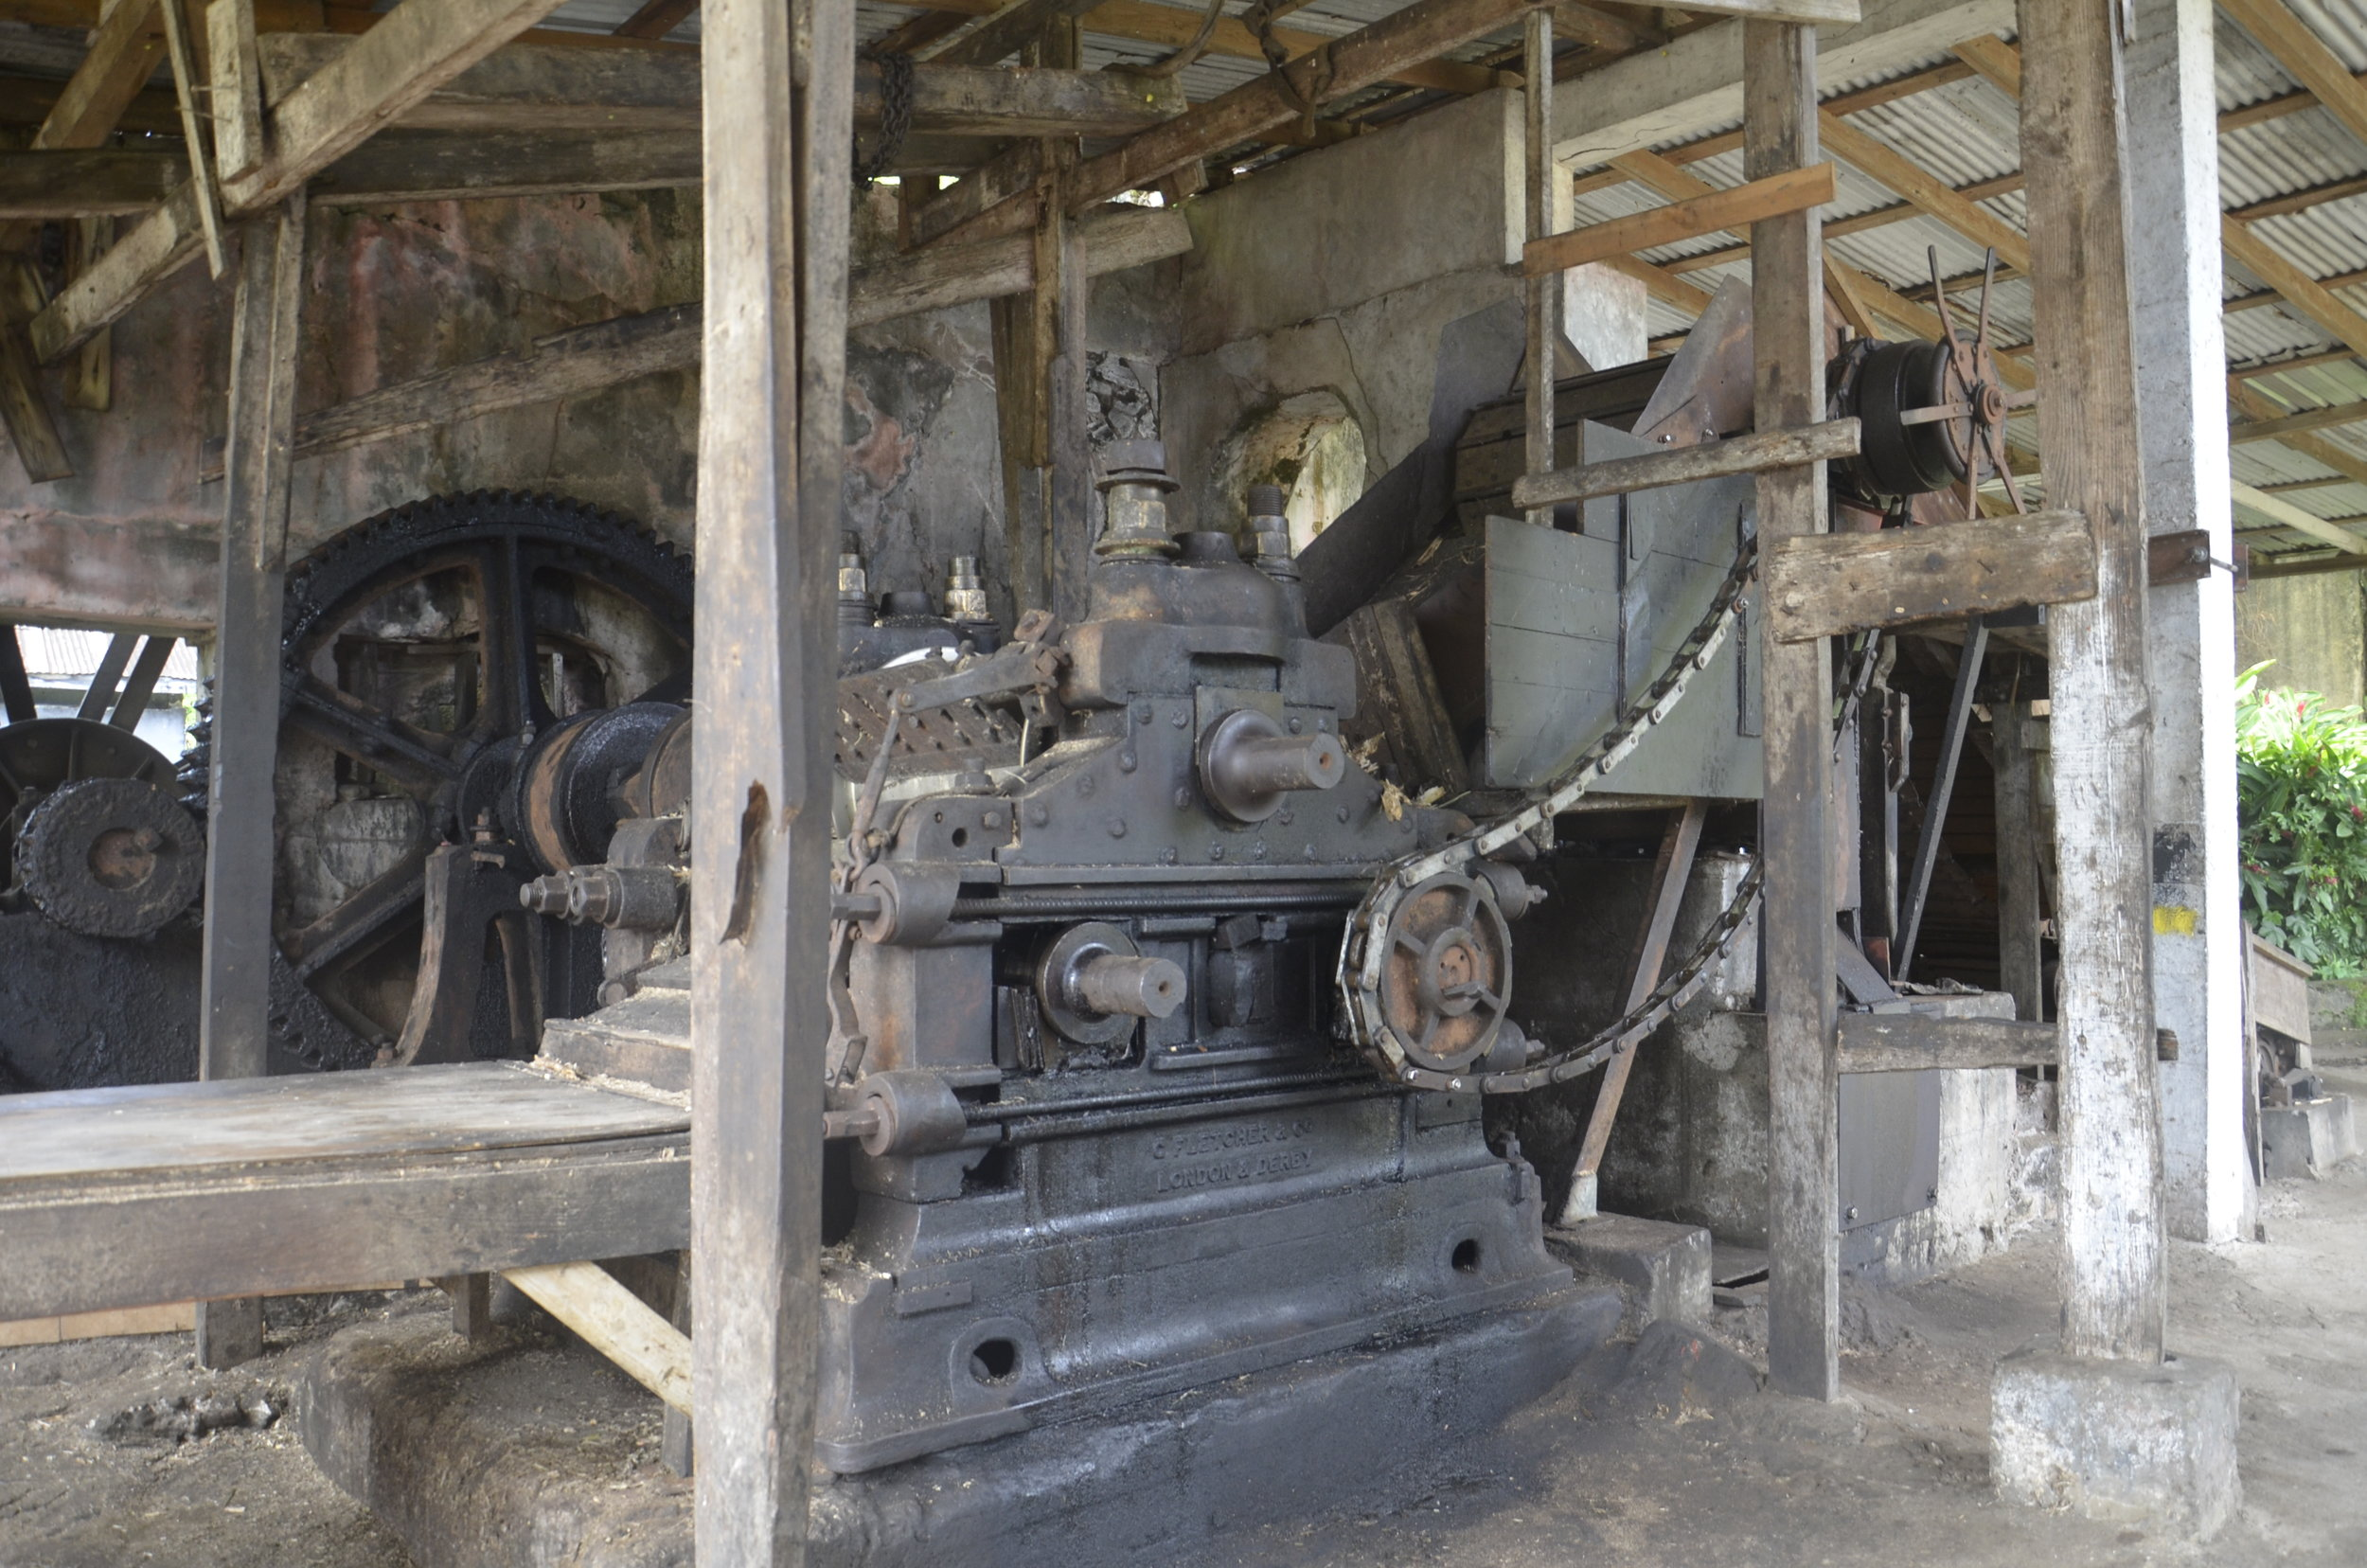 The original wooden water wheel is still used to drive this original cane pressing machine.